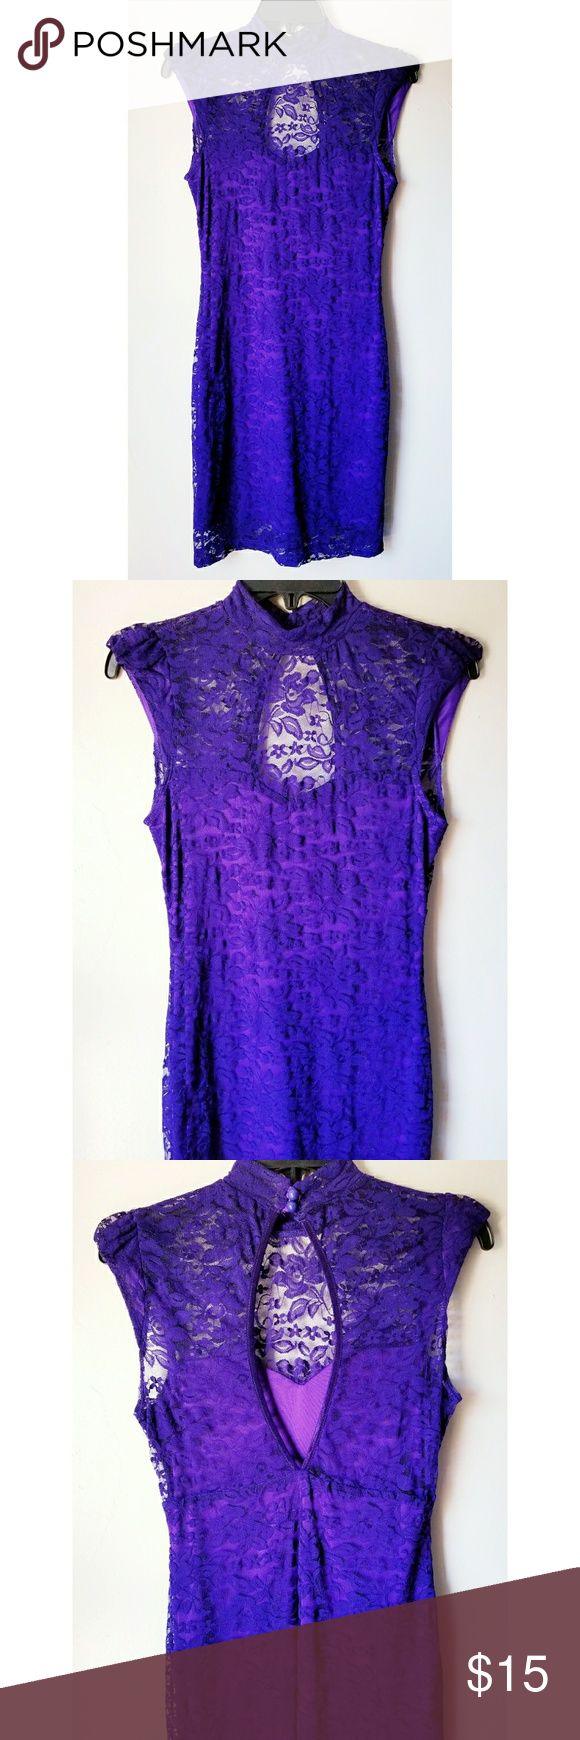 Sabora Purple Lace Bodycon Stretch Mini Dress Sabora Purple Lace Bodycon Stretch Mini Dress  Button Neck Back Closure  Sleeveless/Cap Sleeve  Open Back  Lined  Pit to pit- 16 in  Length- 34 in  Very sexy...shows curves  Great for a night out on the town,clubbing,etc,  Pre-Owned ...Great Condition! Sabora Dresses Mini